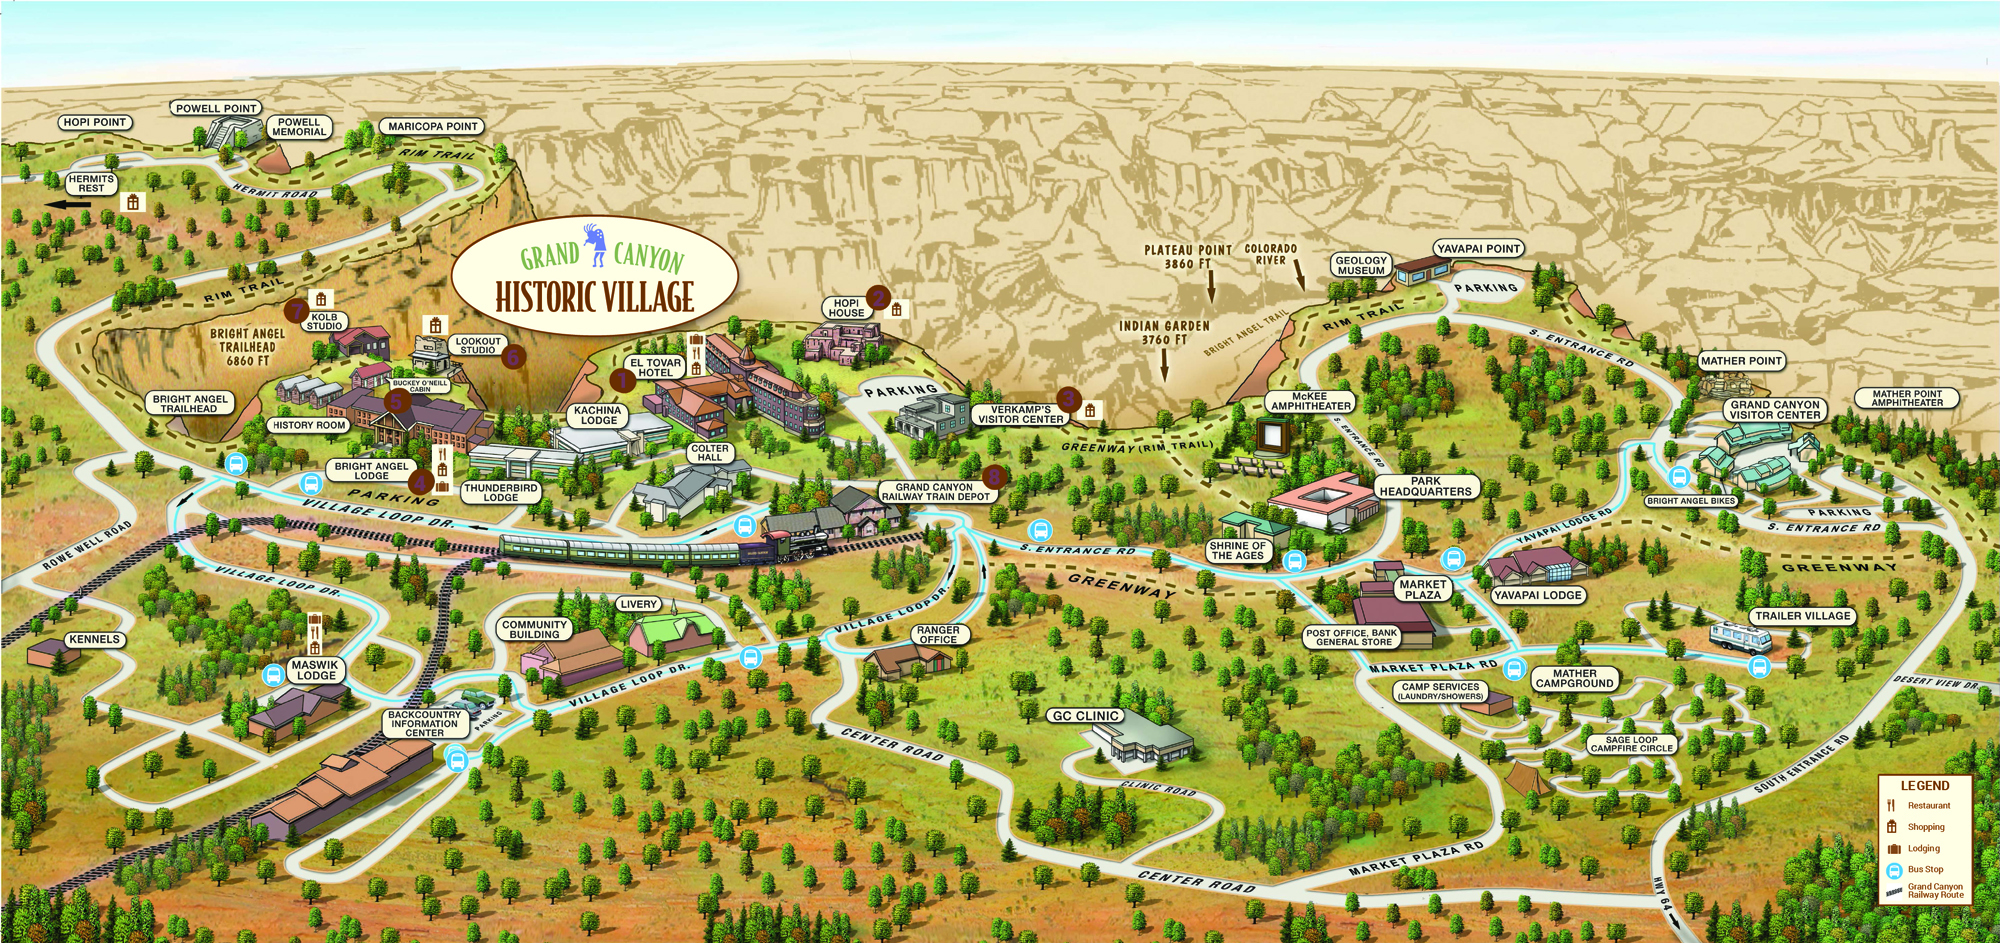 Grand Canyon Park Maps – Grand Canyon Tourist Map